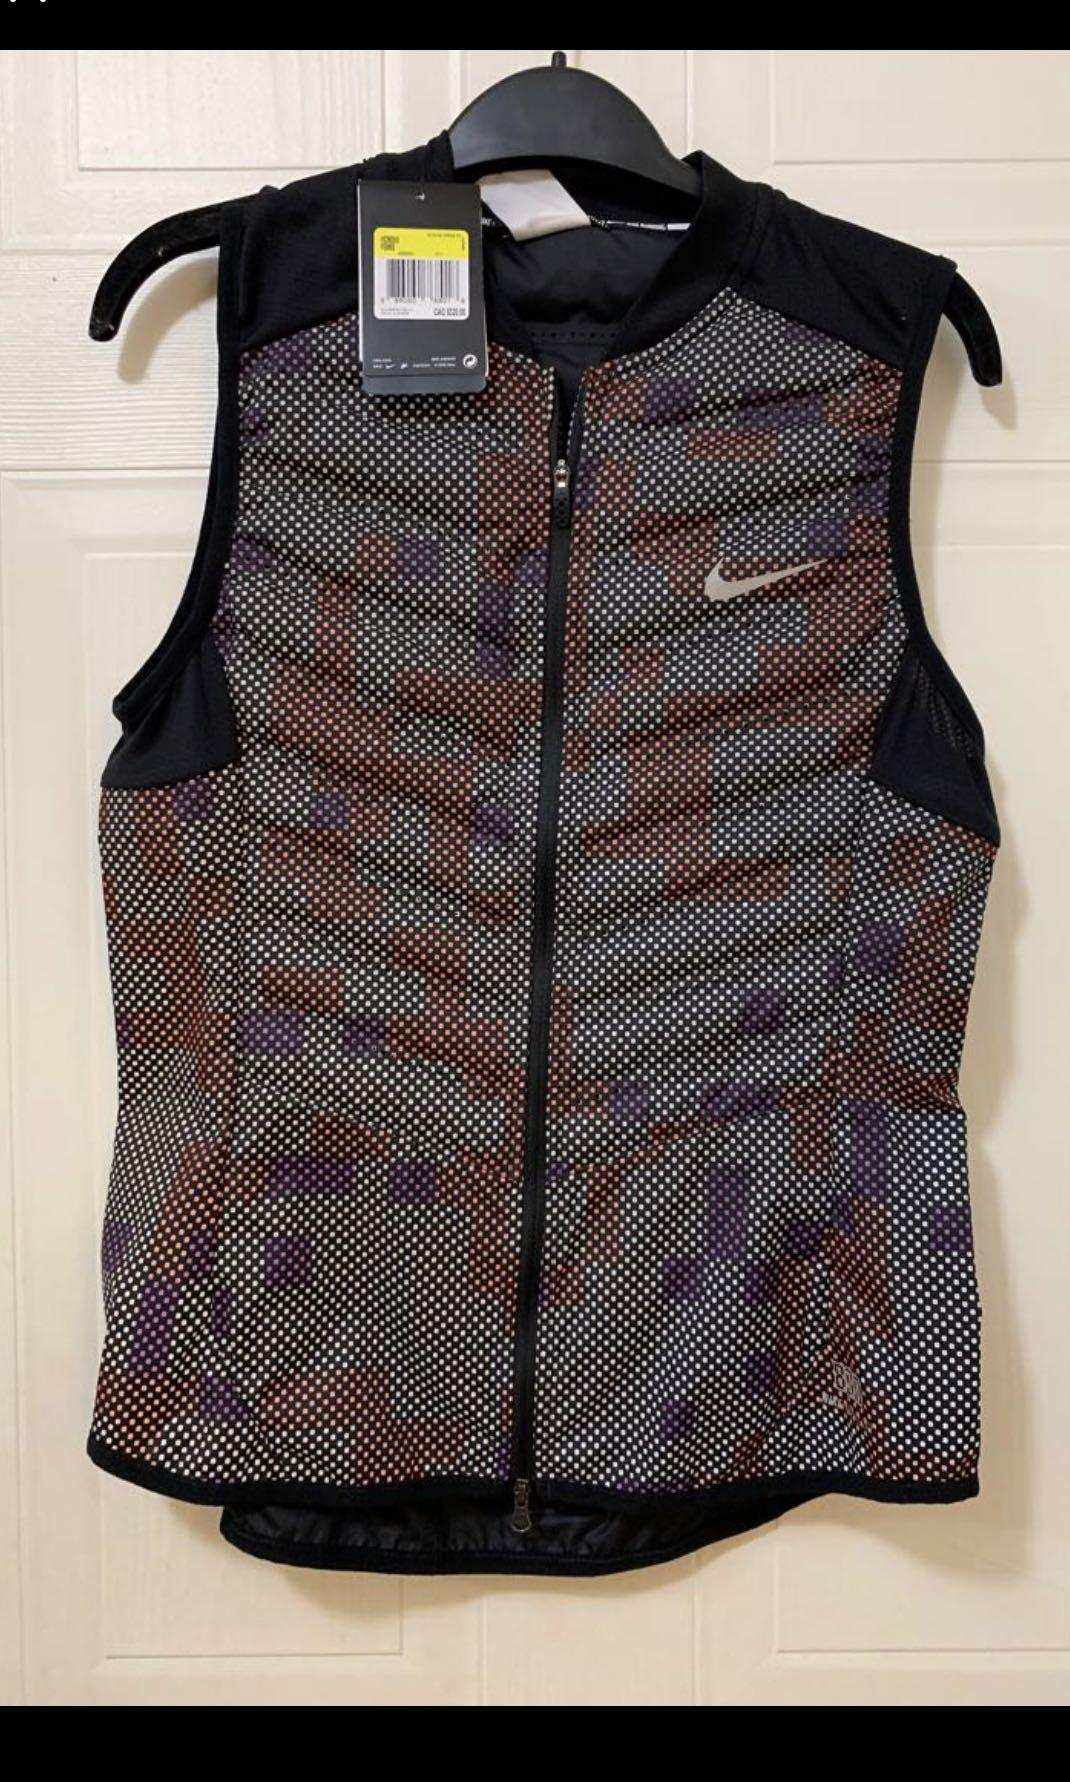 Nike Reflective Vest- brand new with tags! Size small